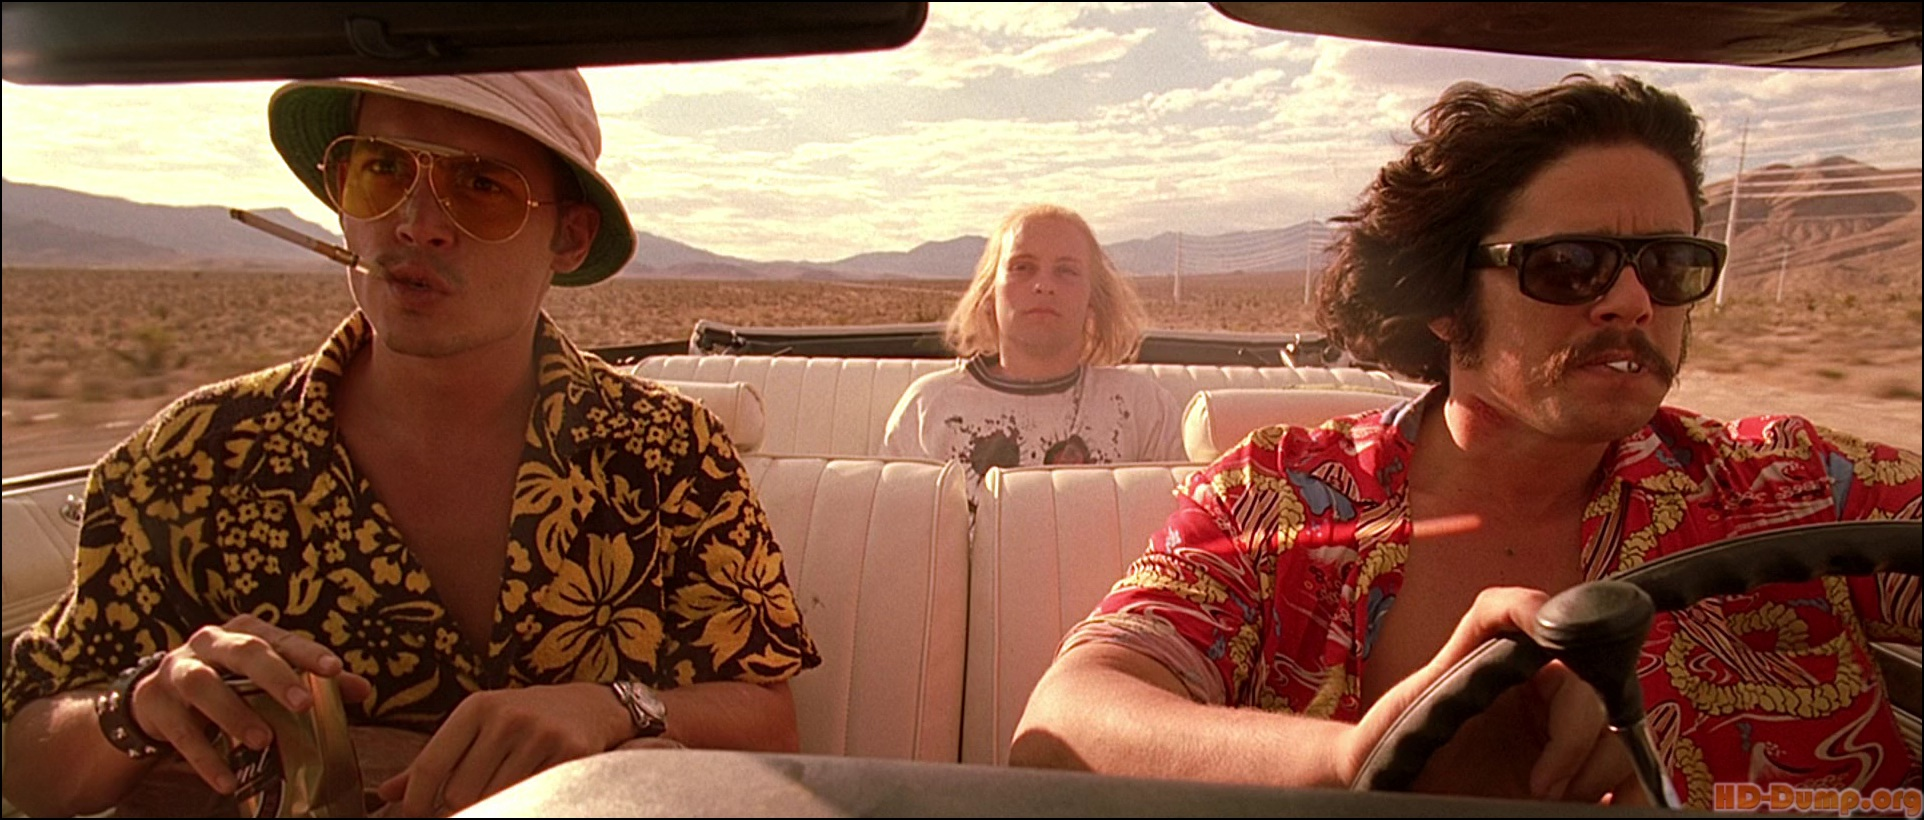 High Resolution Wallpaper | Fear And Loathing 1924x820 px